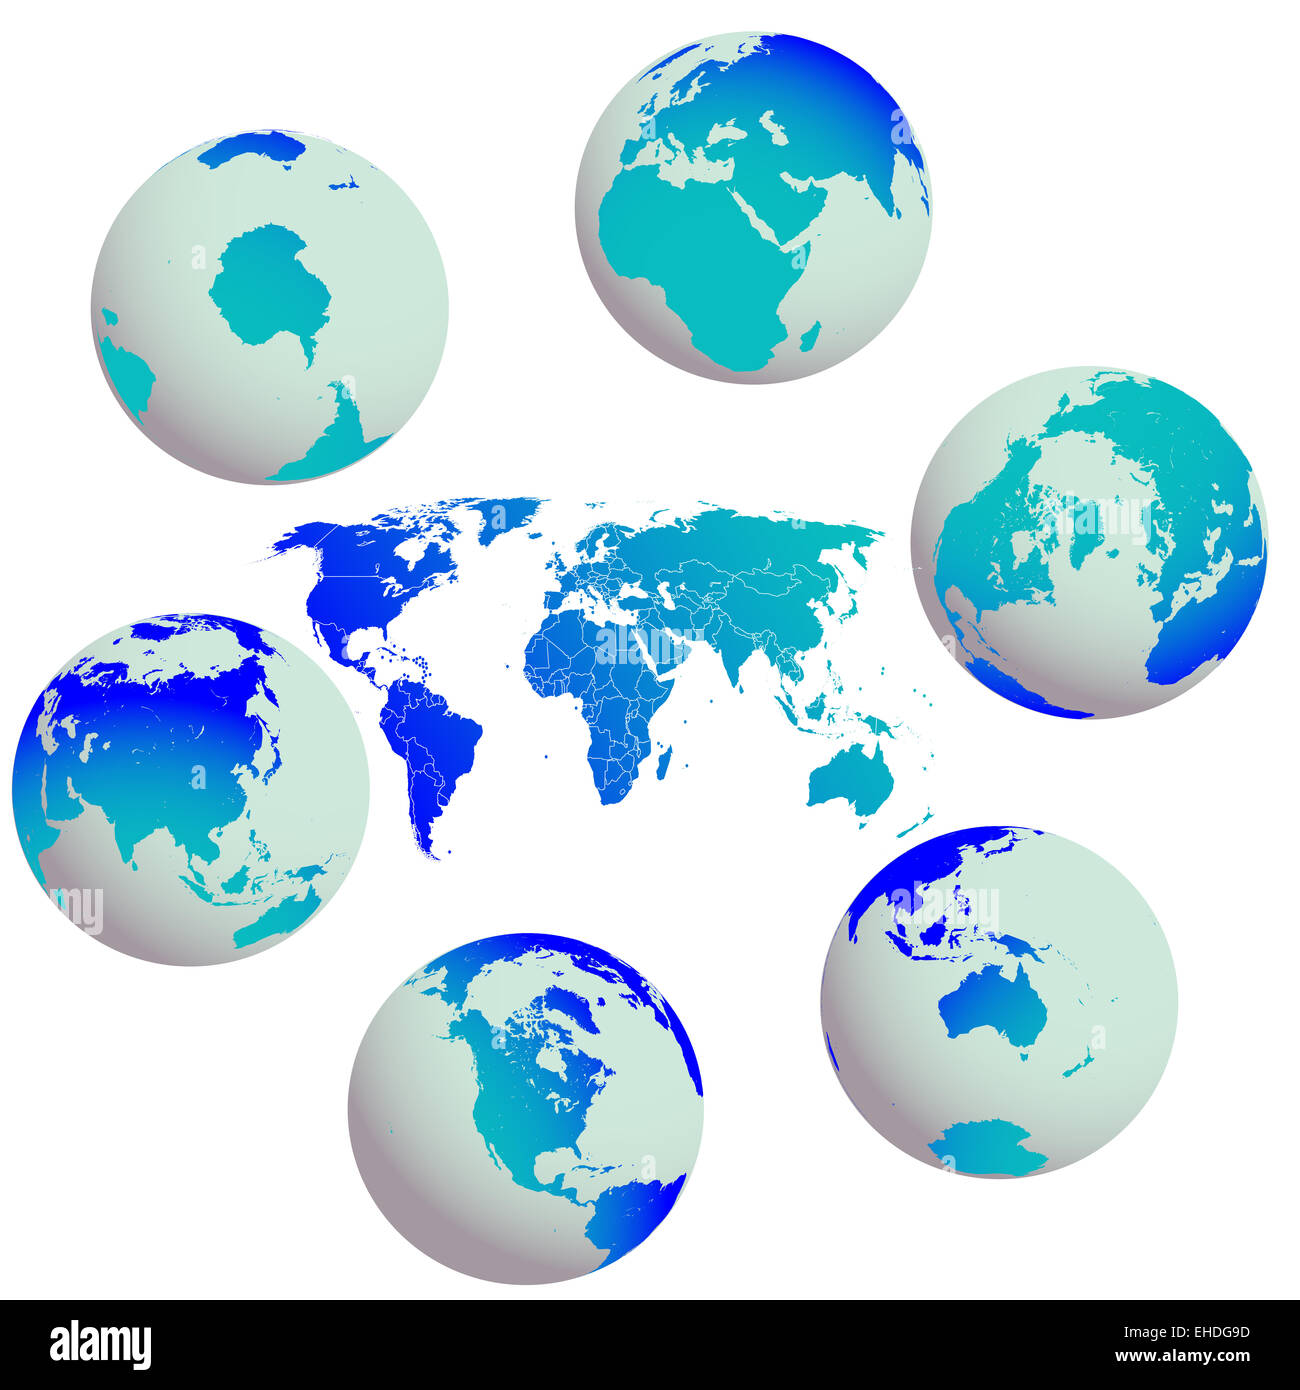 earth globes and world map against white - Stock Image